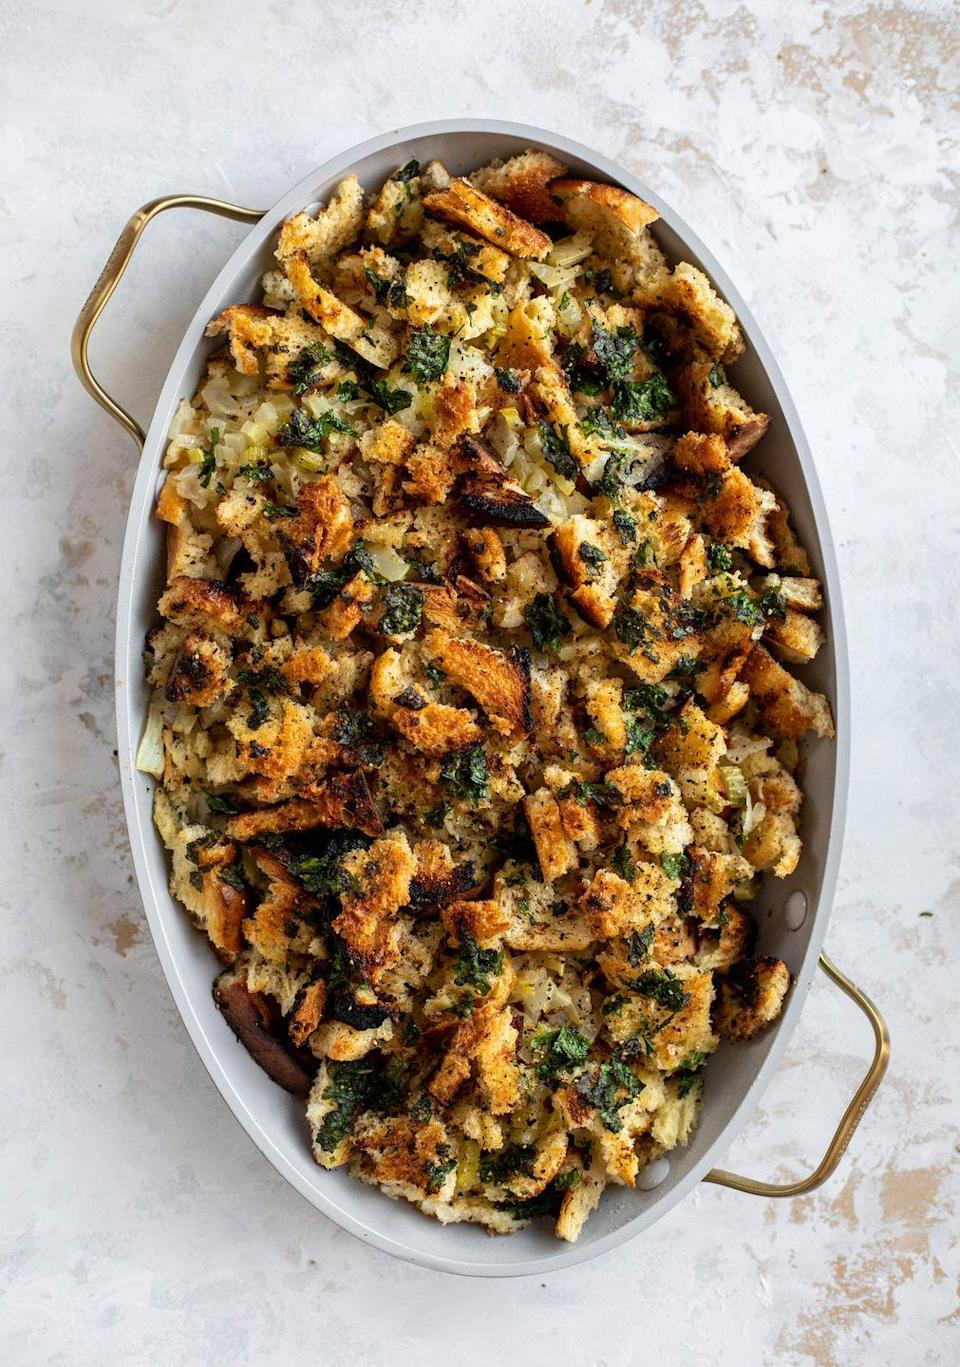 "<p>Your regular old stuffing is totally transformed by using toasty, grilled bread.</p><p><strong>Get the recipe at <a href=""https://www.howsweeteats.com/2019/11/grilled-bread-stuffing/"" rel=""nofollow noopener"" target=""_blank"" data-ylk=""slk:How Sweet Eats"" class=""link rapid-noclick-resp"">How Sweet Eats</a>.</strong></p><p><strong><a class=""link rapid-noclick-resp"" href=""https://go.redirectingat.com?id=74968X1596630&url=https%3A%2F%2Fwww.walmart.com%2Fbrowse%2Fhome%2Fserveware%2Fthe-pioneer-woman%2F4044_623679_639999_2347672%3Ffacet%3Dbrand%253AThe%2BPioneer%2BWoman&sref=https%3A%2F%2Fwww.thepioneerwoman.com%2Ffood-cooking%2Fmeals-menus%2Fg33251890%2Fbest-thanksgiving-sides%2F"" rel=""nofollow noopener"" target=""_blank"" data-ylk=""slk:SHOP SERVING UTENSILS"">SHOP SERVING UTENSILS</a><br></strong></p>"